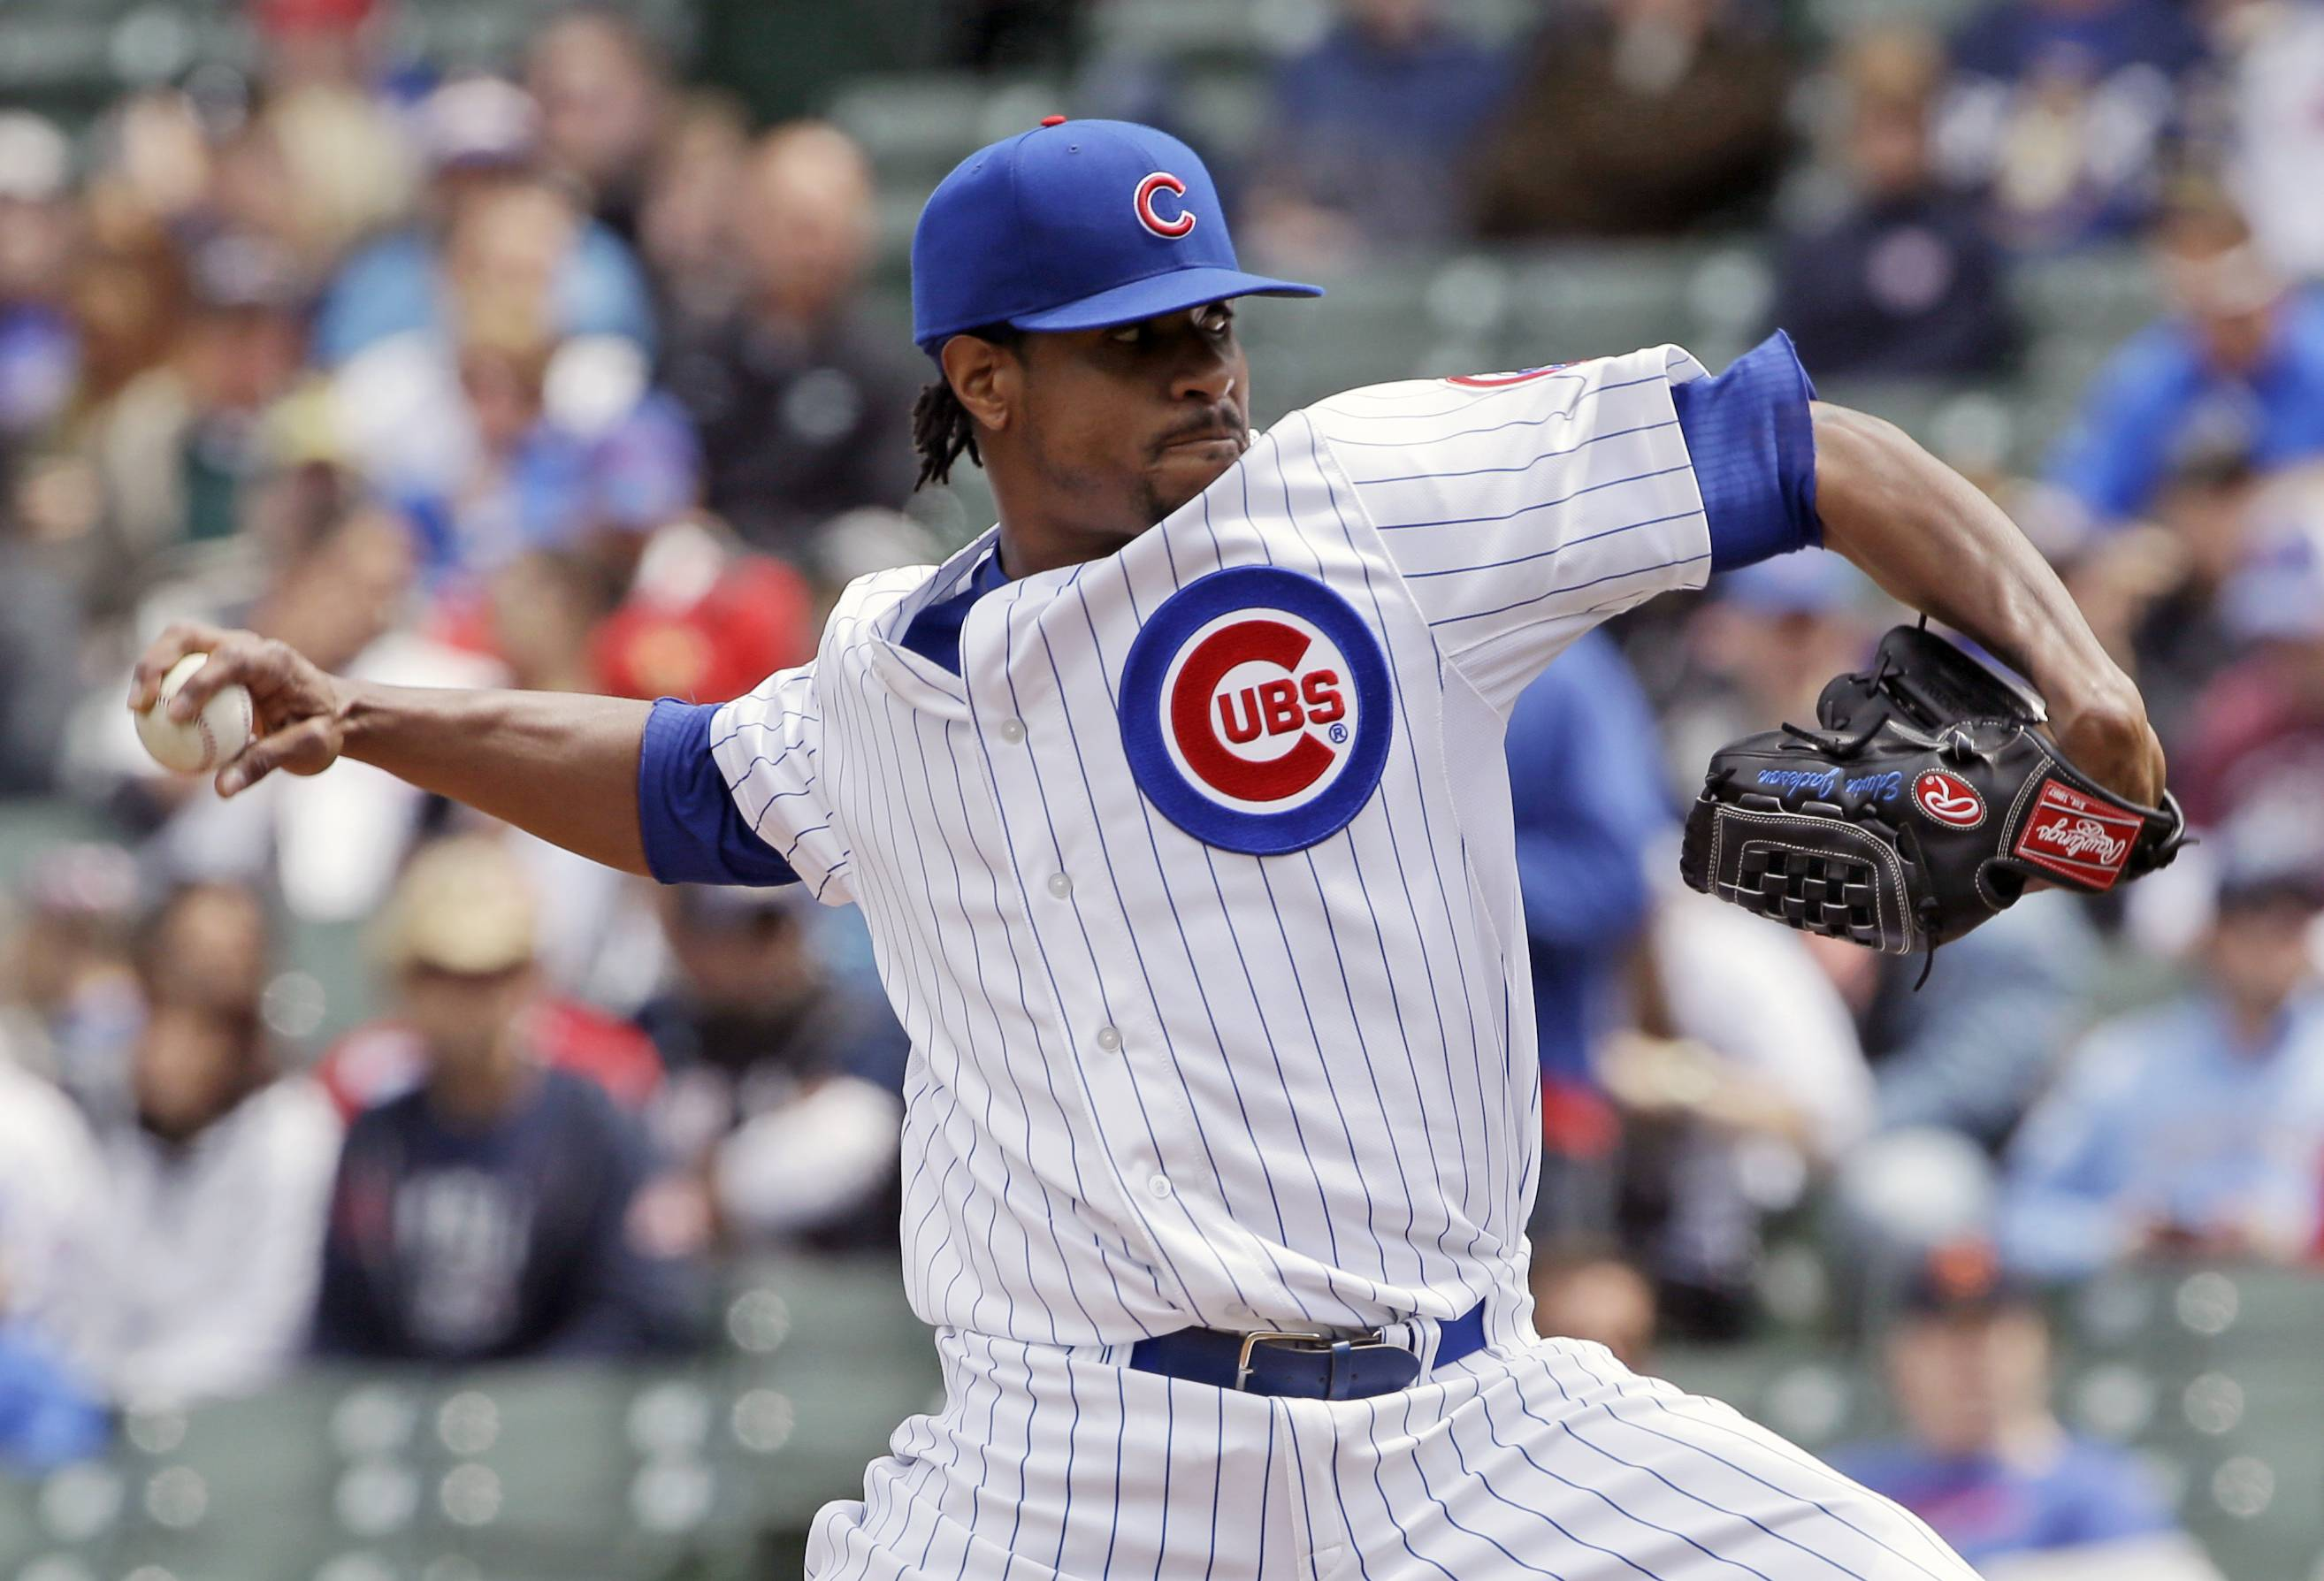 Chicago Cubs starter Edwin Jackson throws against the Milwaukee Brewers during the first inning of a baseball game in Chicago, Saturday, May 17, 2014.